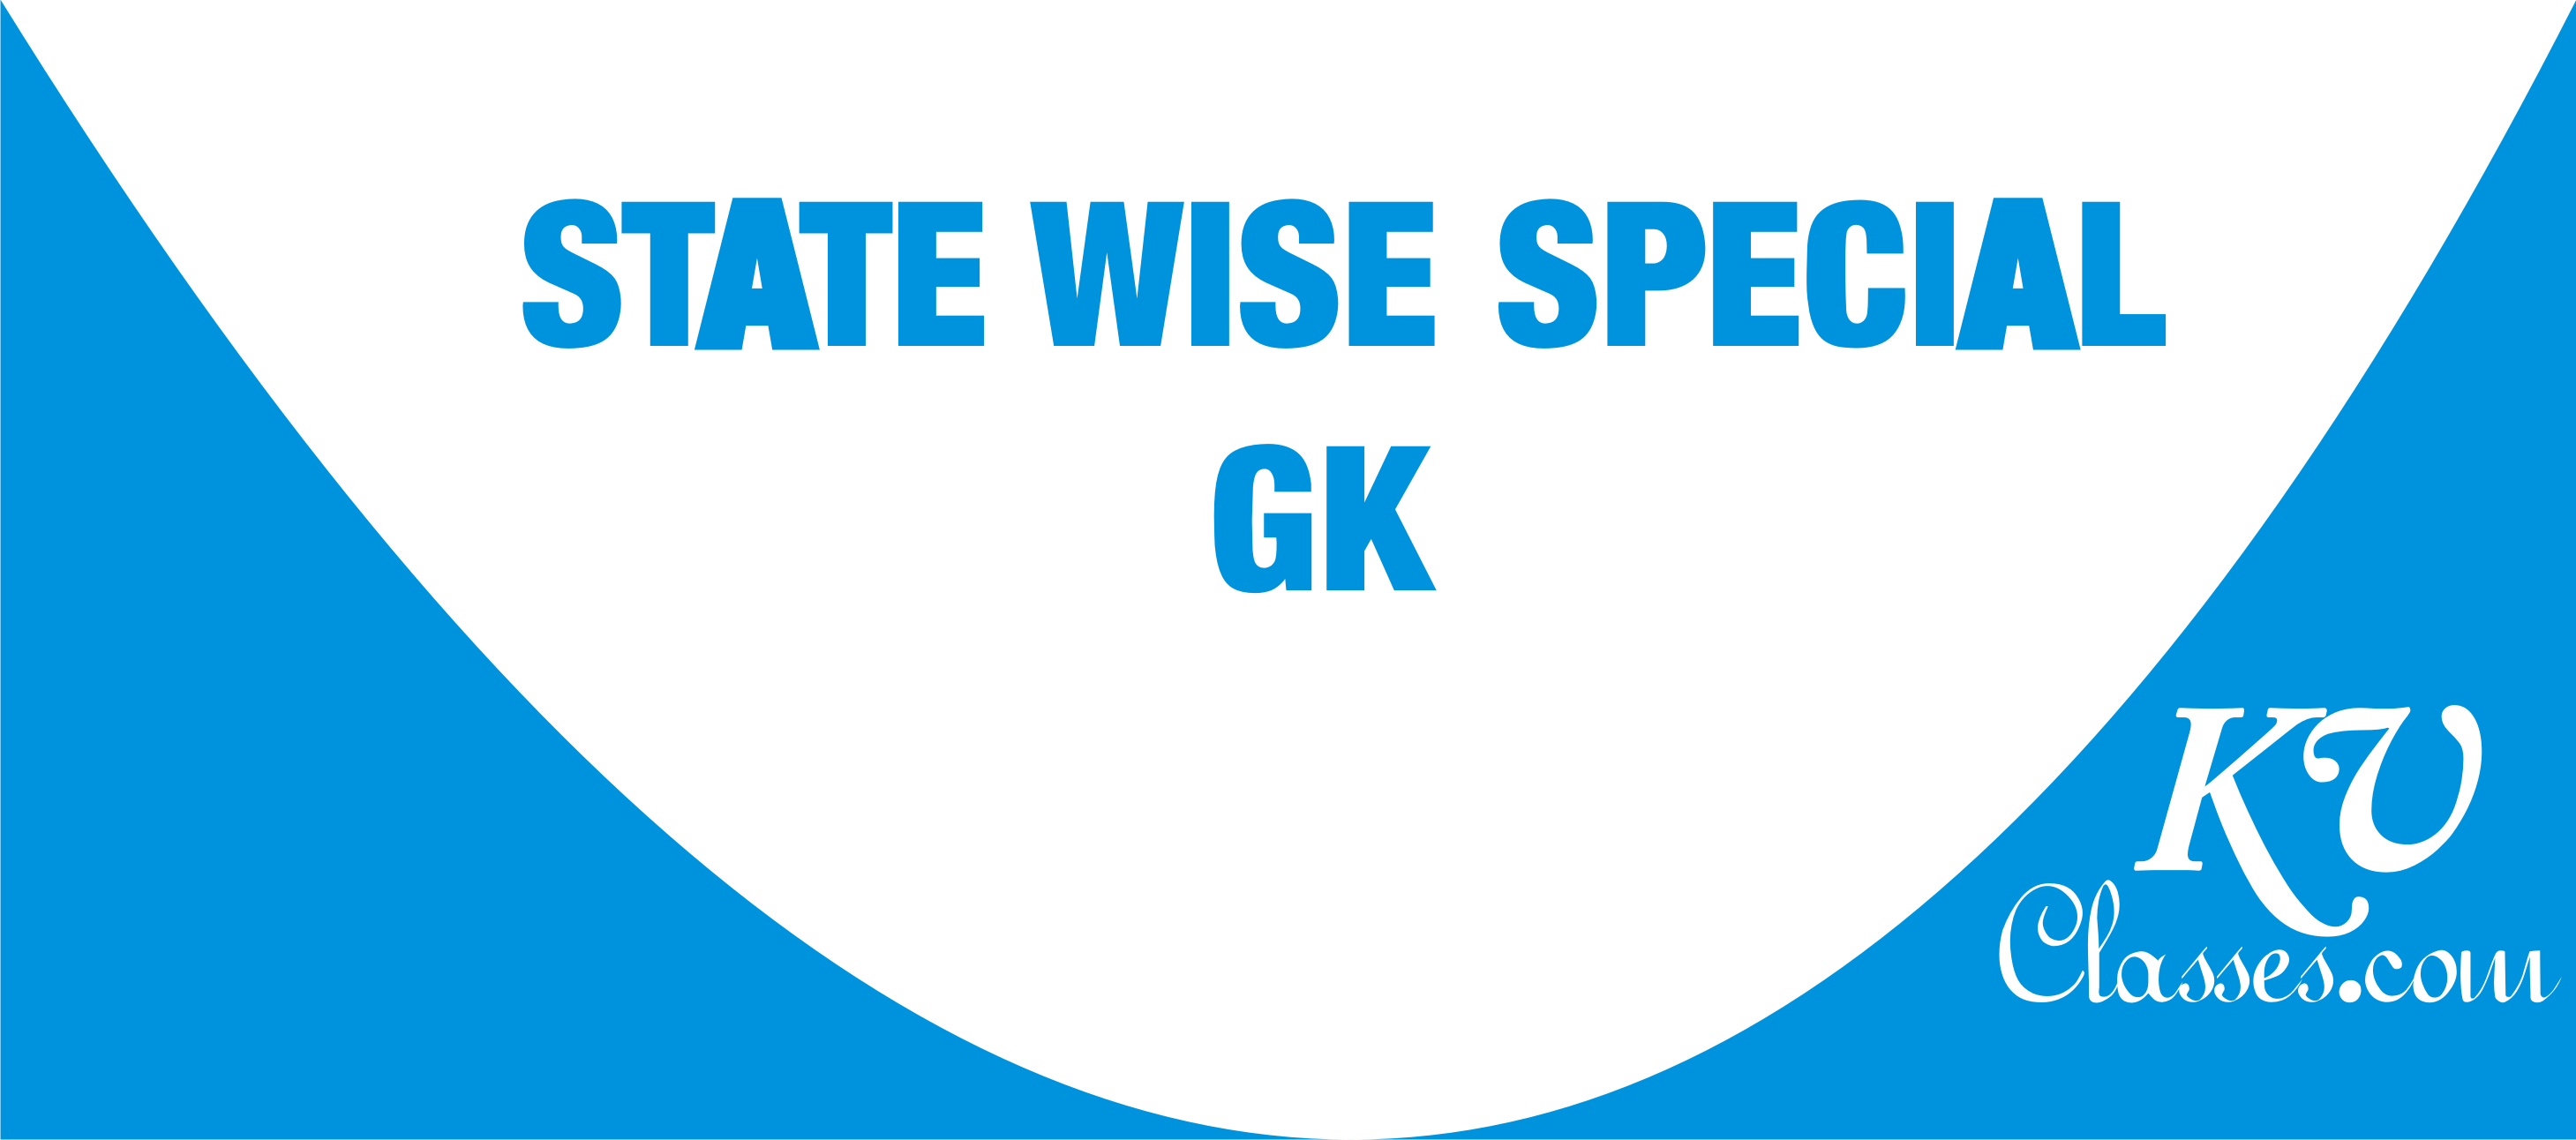 STATE WISE SPECIAL GK Pdf download